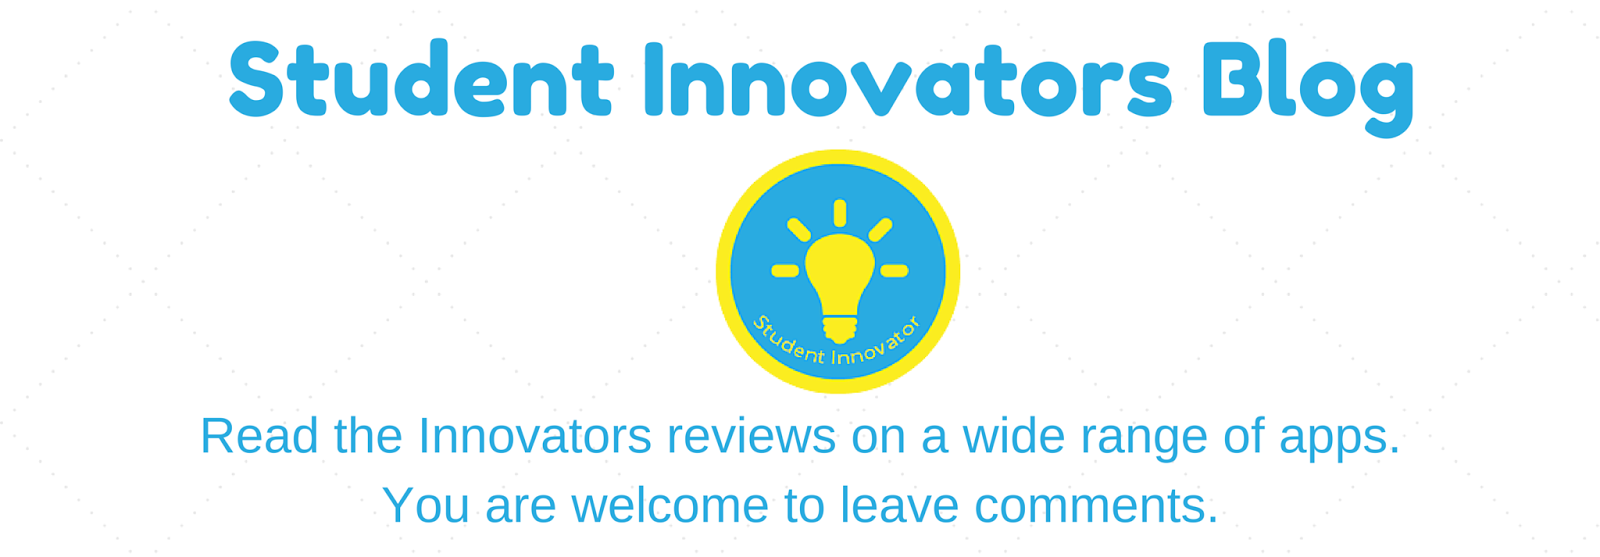 Welcome to the Student Innovator Blog